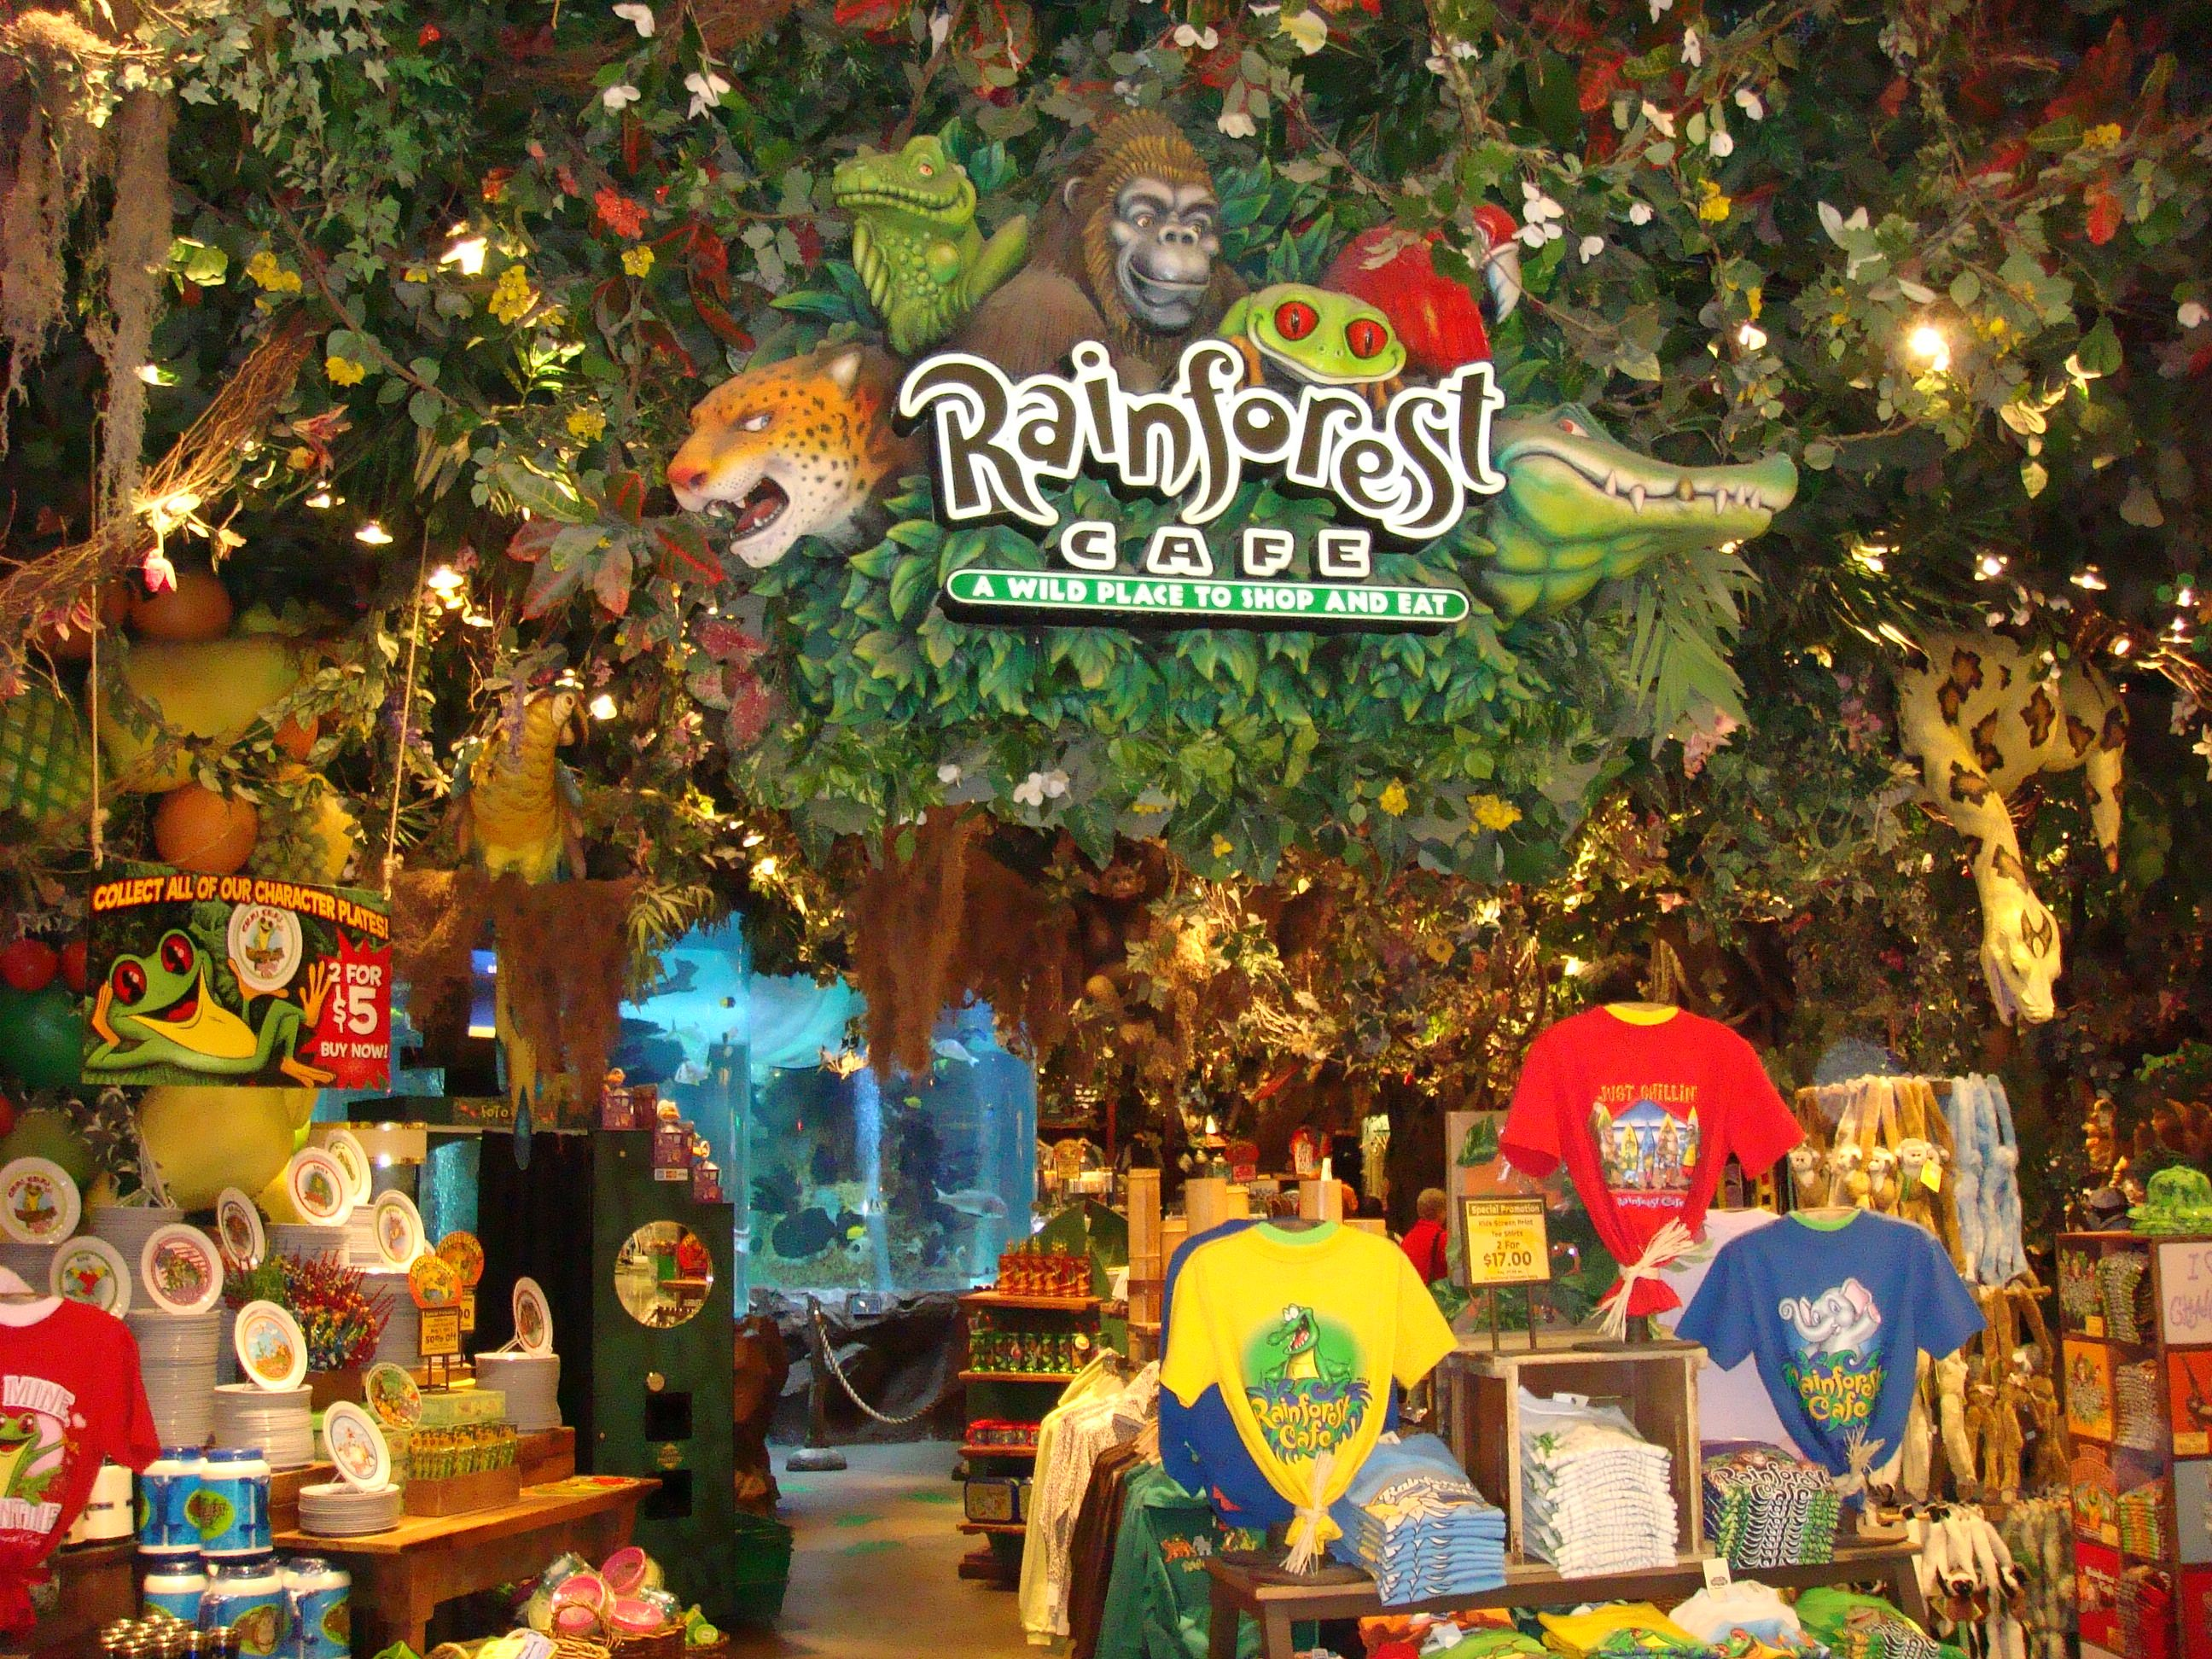 The kids never get tired of this place. Rainforest cafe